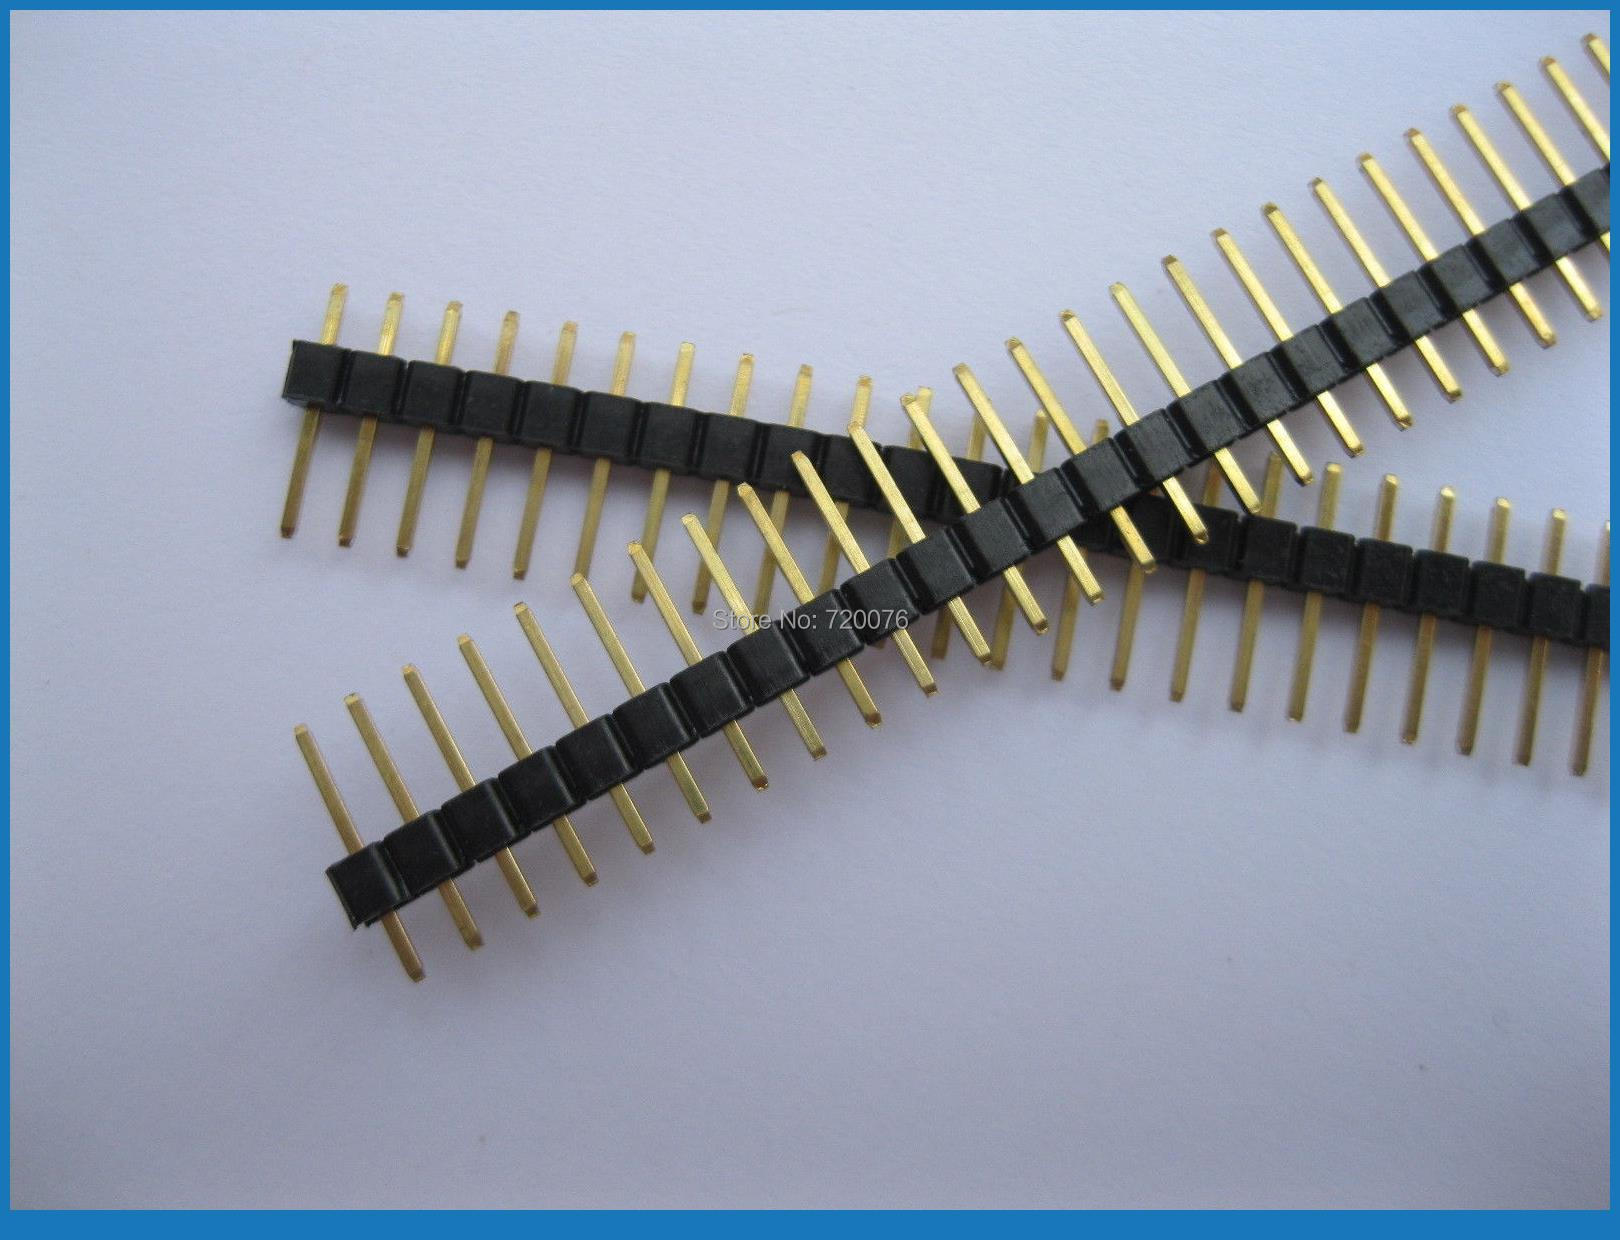 200 pcs 2.54mm Breakable Pin Header 1x40 40pin Male Single Row Strip Gold-Plated